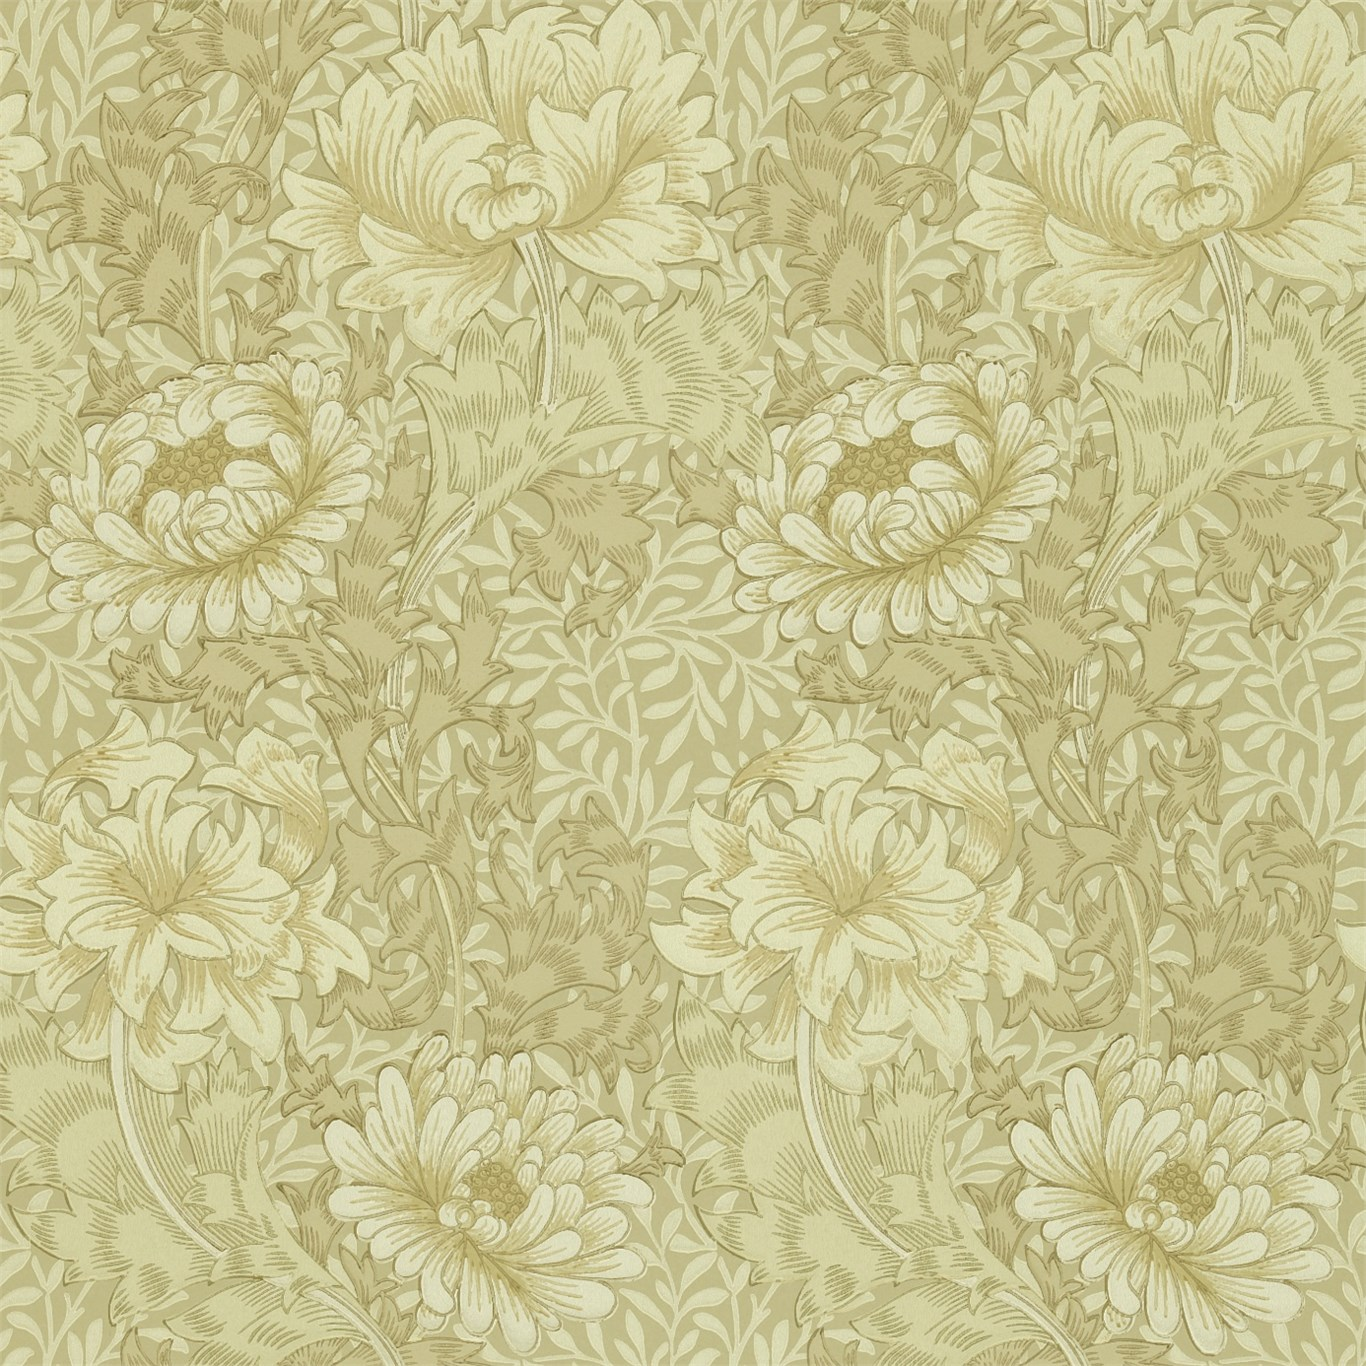 Tapet William Morris Chrysanthmum 210419